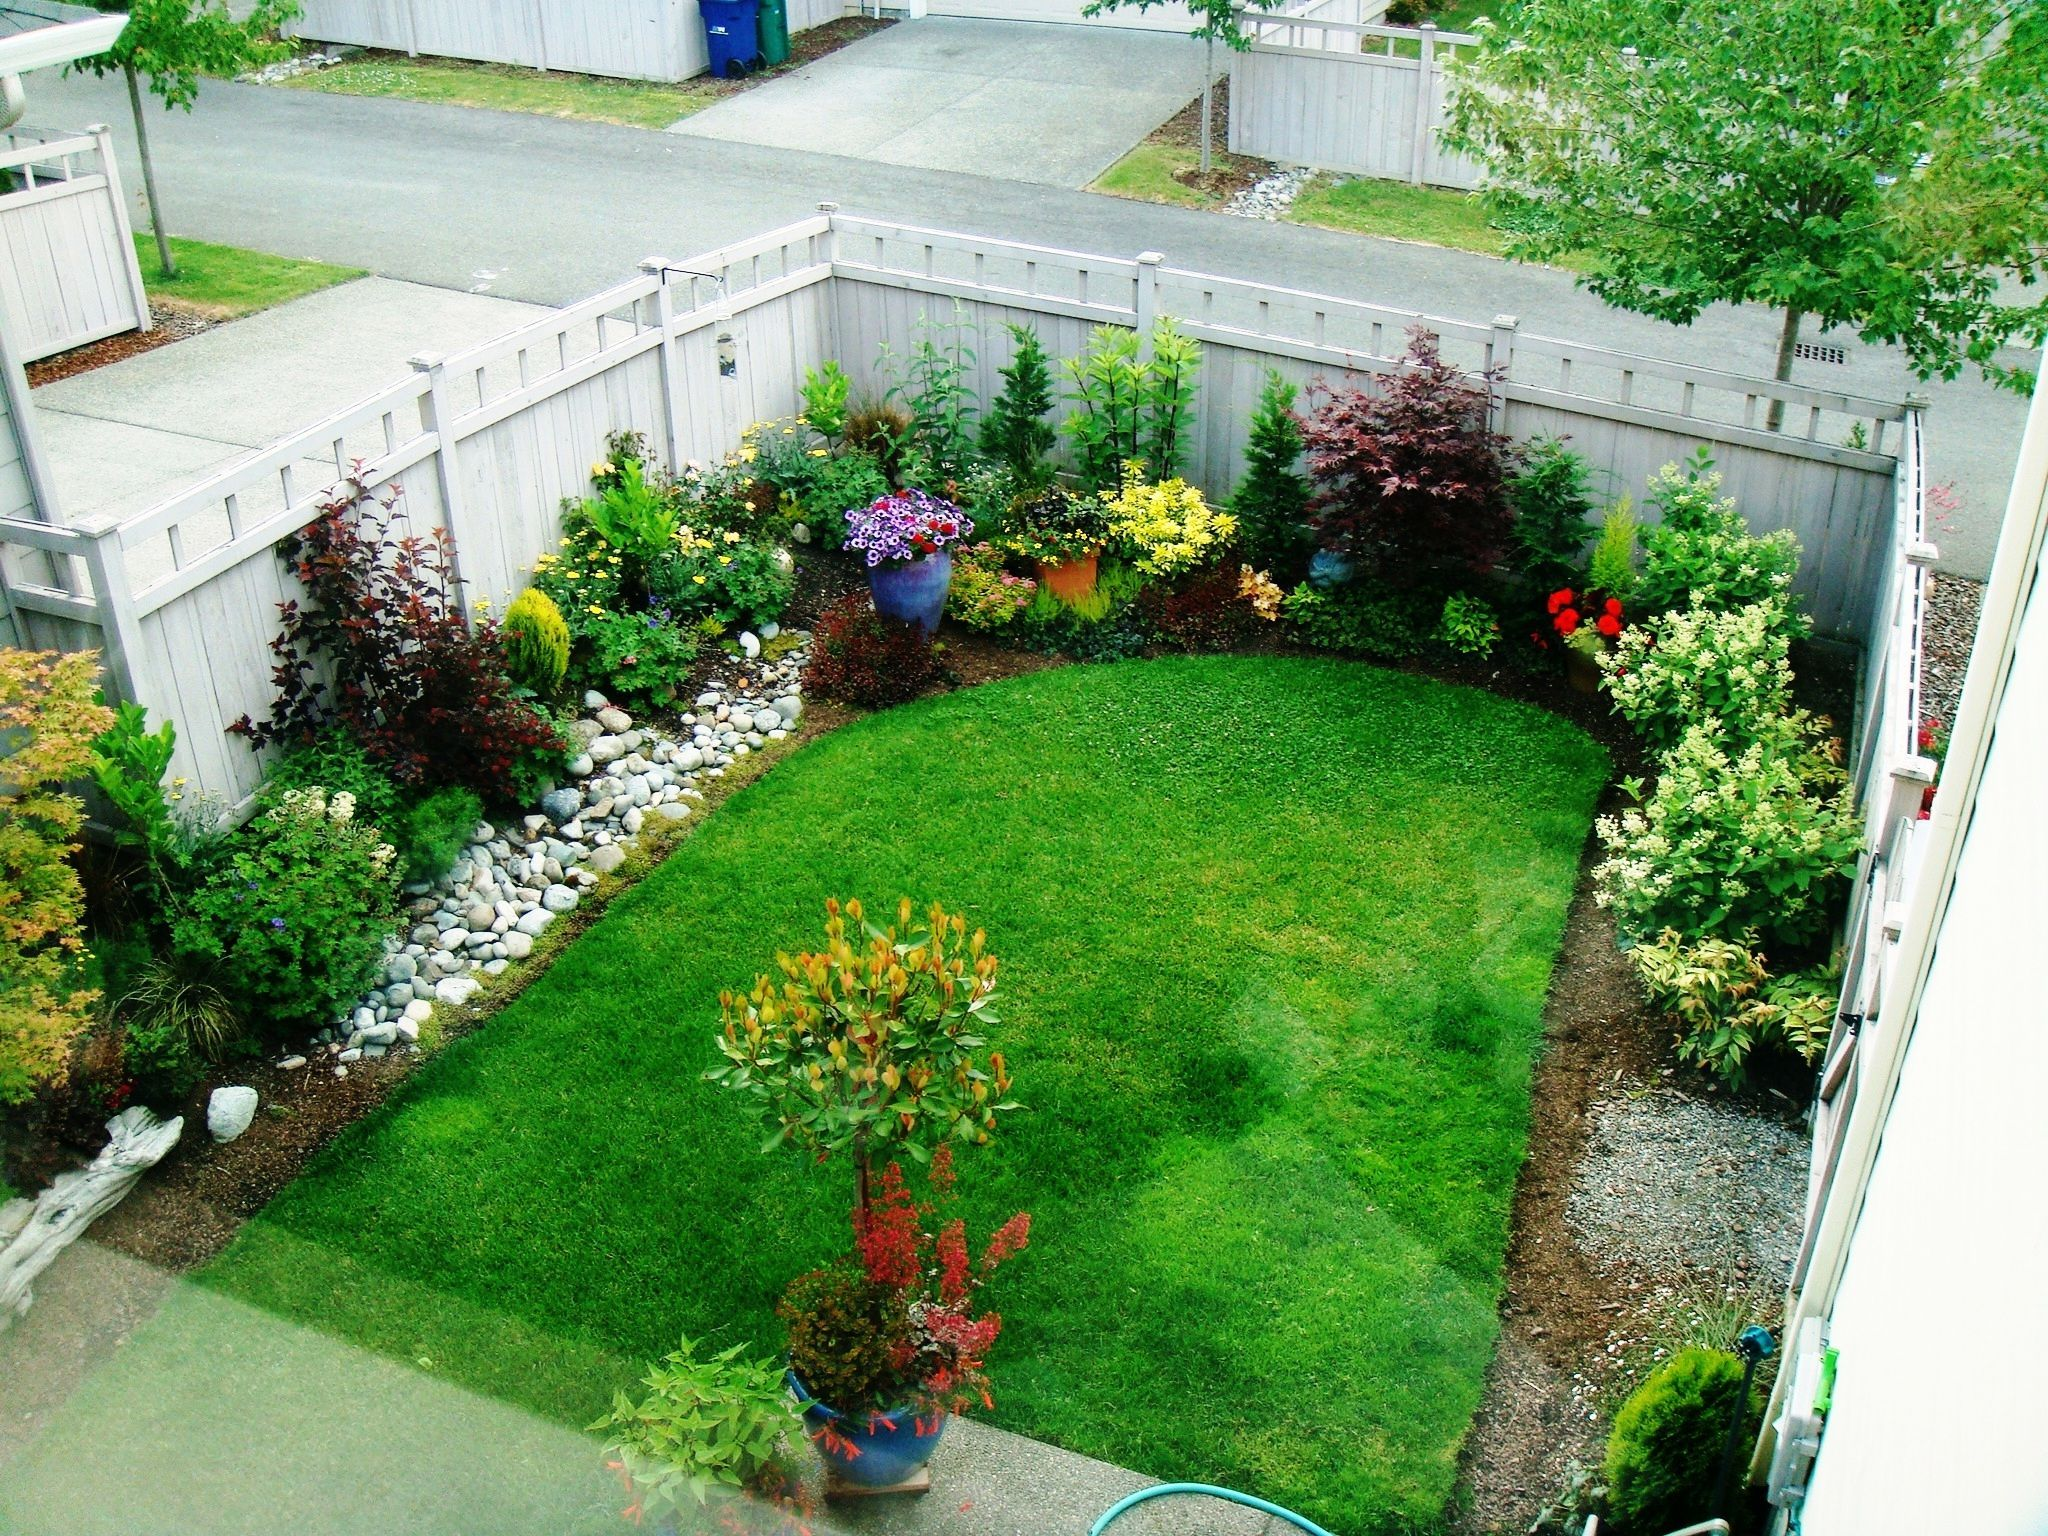 Is Your Yard Or Garden Small On Space? Get Big Tips And Ideas On